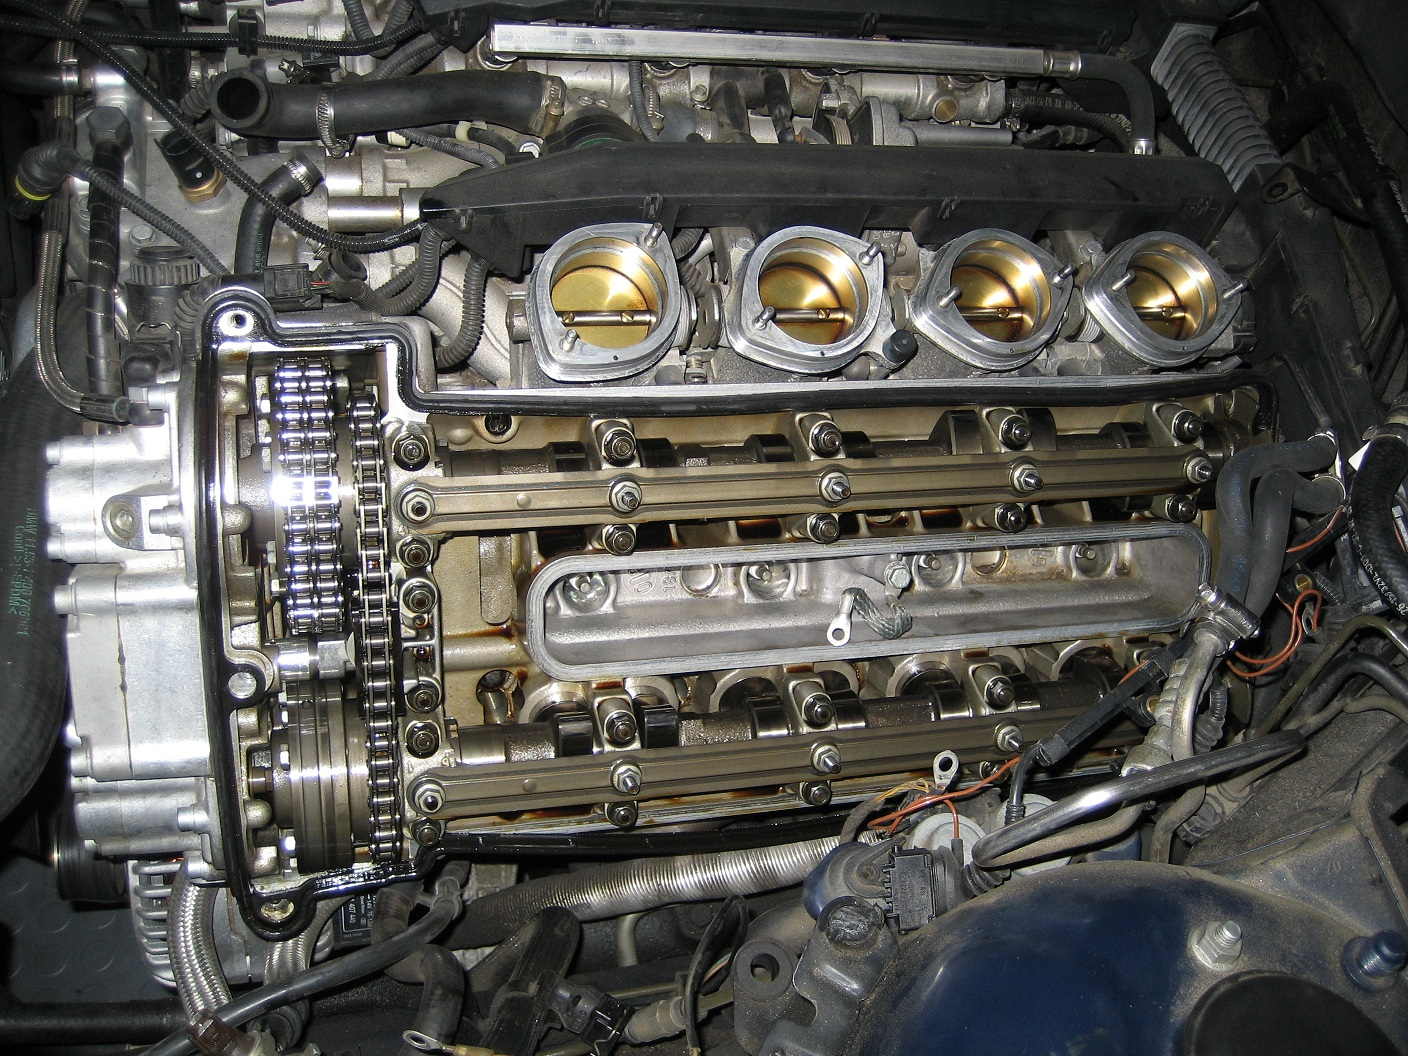 Engine making loud noise, what is it?-engine-001b.jpg